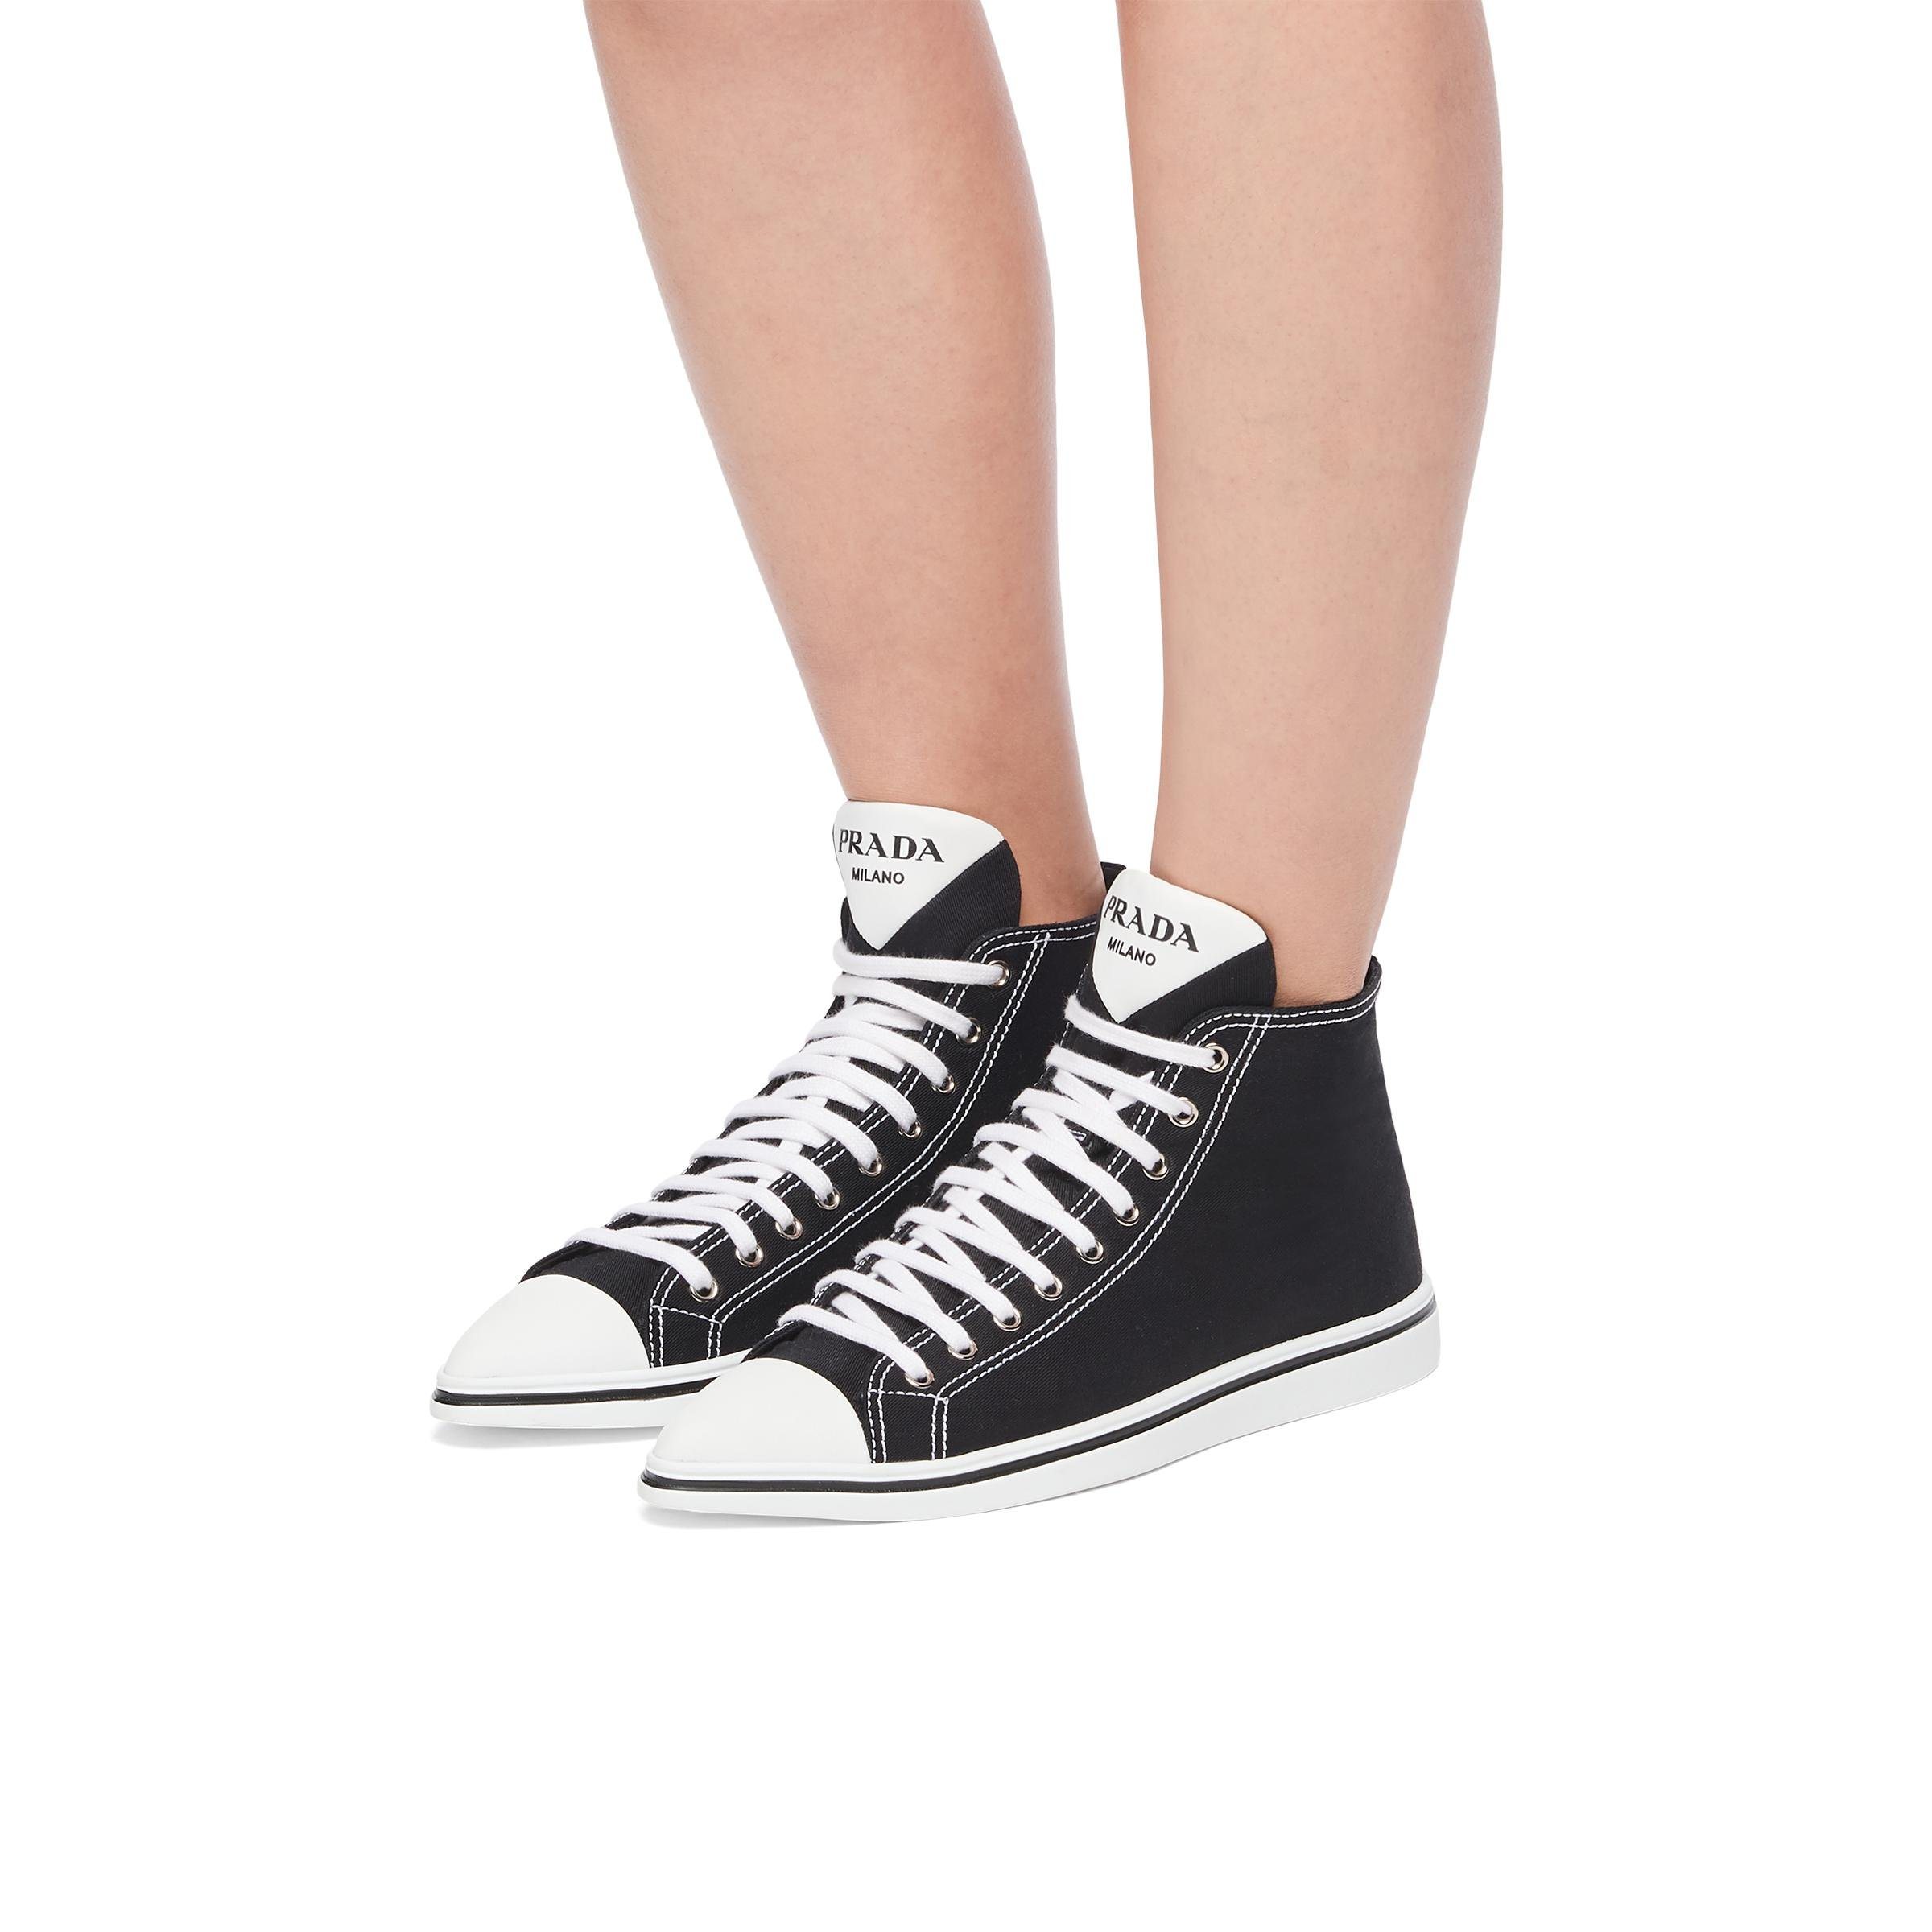 Synthesis High-top Sneakers Women Black 4